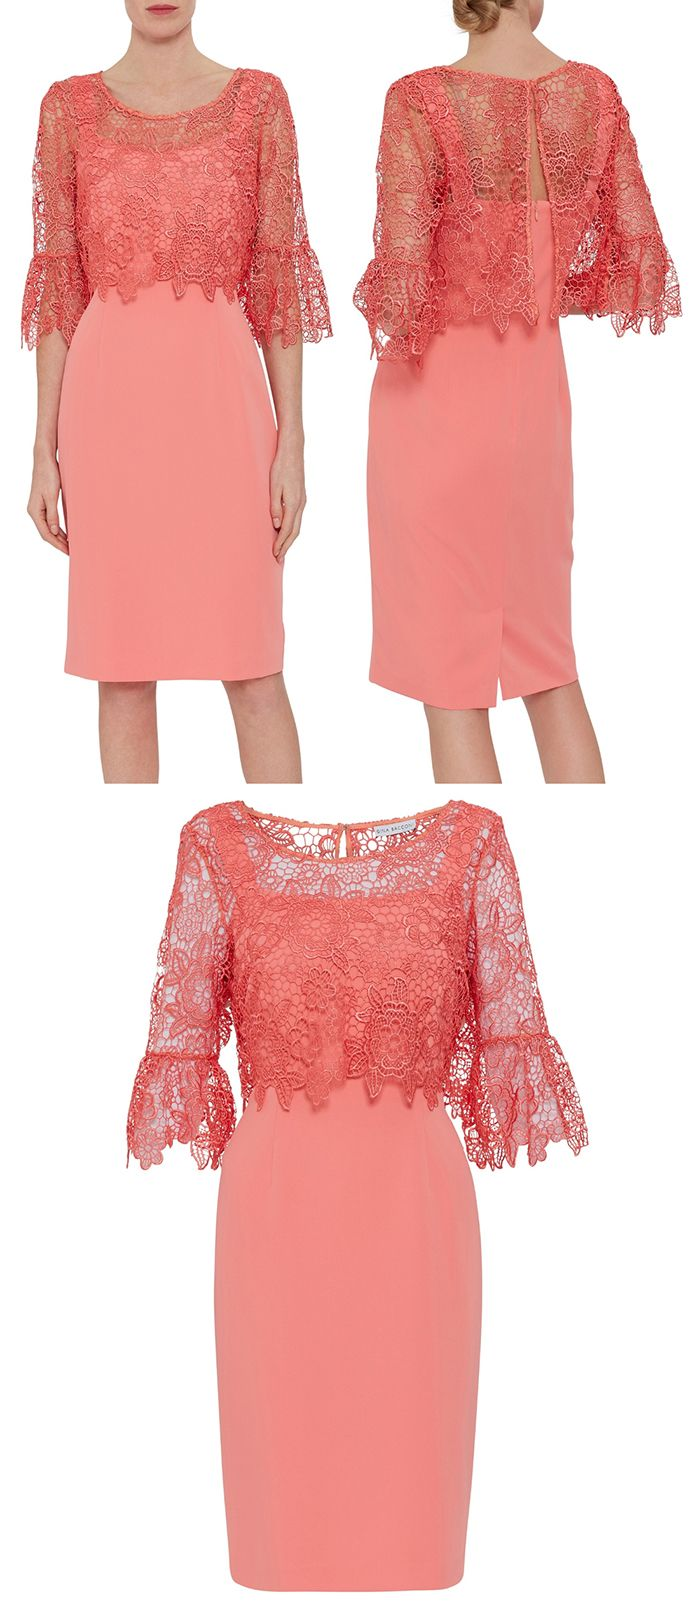 Living Coral Lace Overlay Dress For Spring Mother Of The Bride Spring Weddi Wedding Guest Outfit Formal Spring Wedding Guest Dress Wedding Guest Outfit Summer [ 1617 x 700 Pixel ]